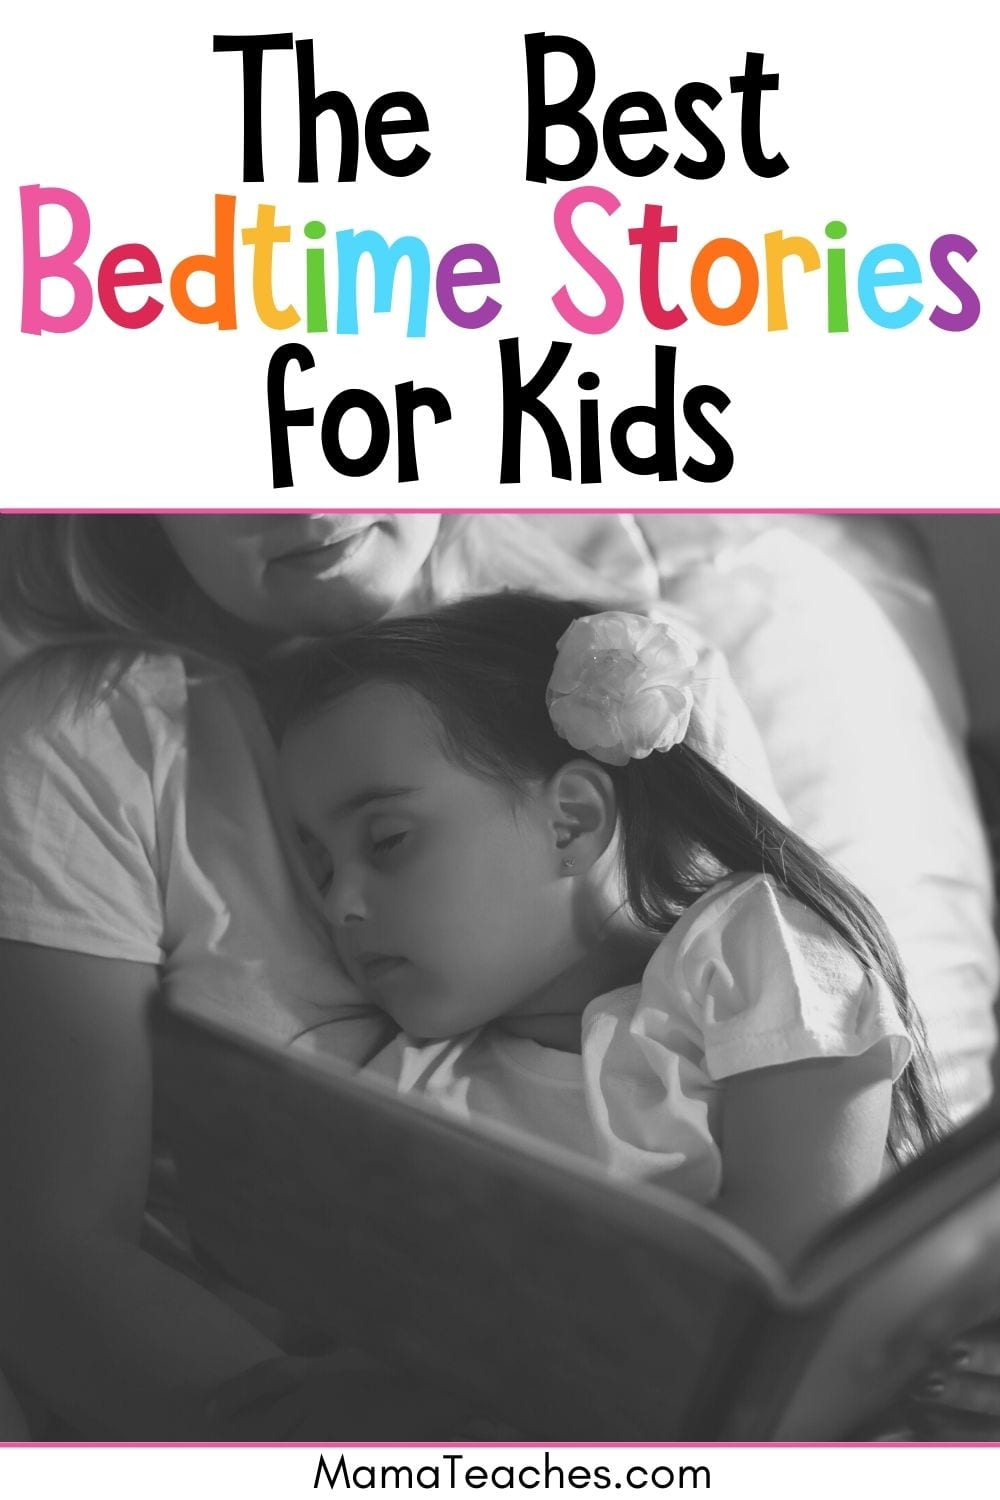 The Very Best Bedtime Stories for Children